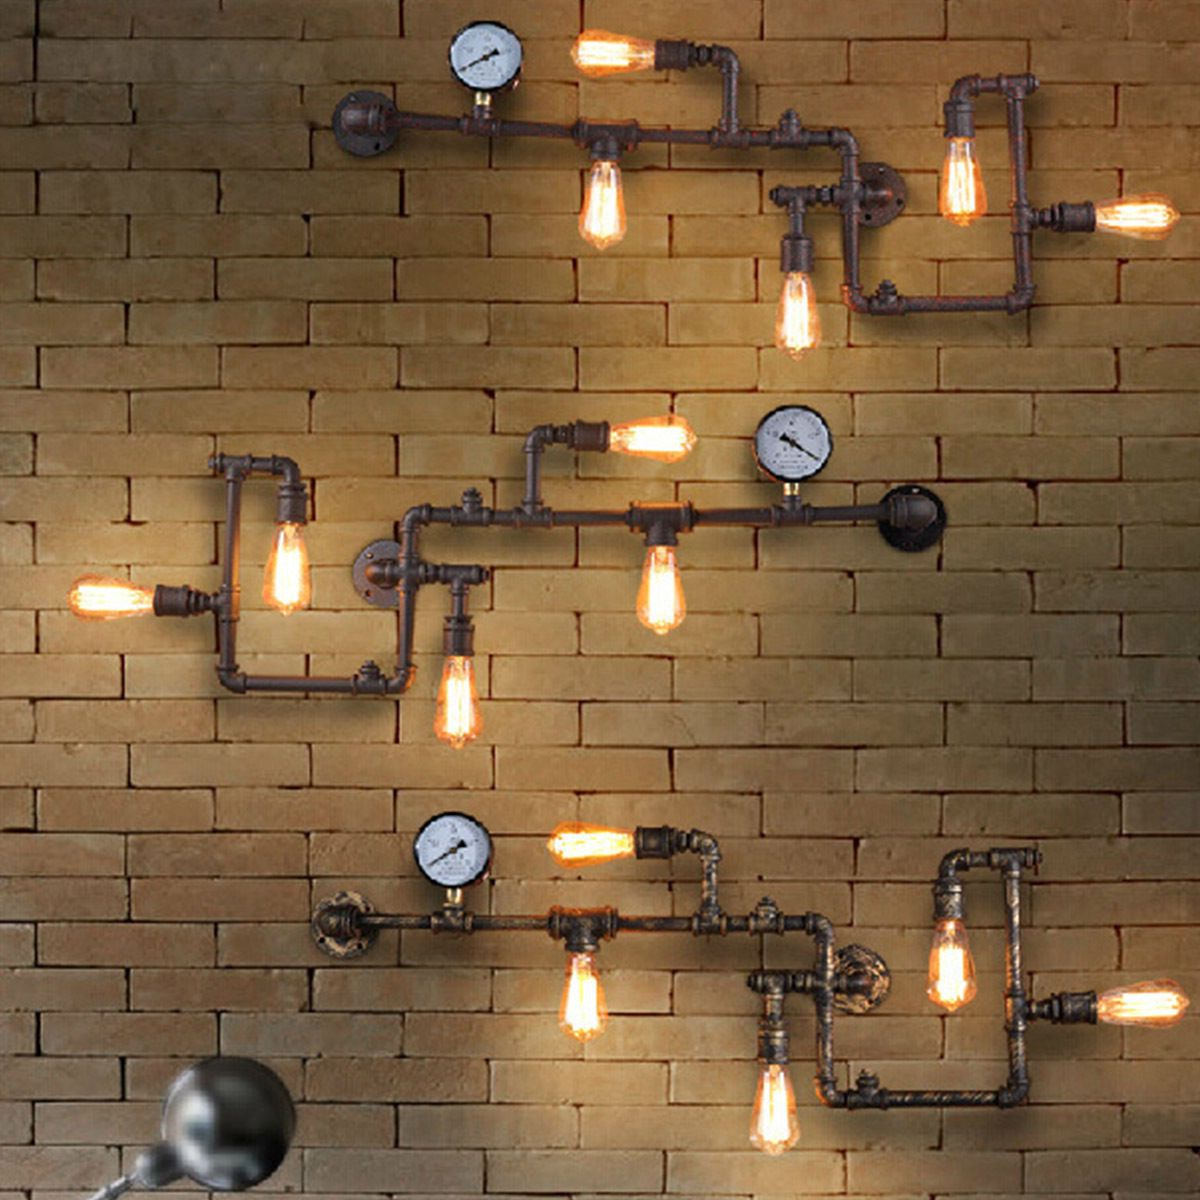 Wall Lamps Nordic Loft Style Creative Clock Water Pipe Lamp Industrial Vintage Wall Light Fixtures For Edison Wall Sconce Indoor Lighting Moderate Cost Lights & Lighting